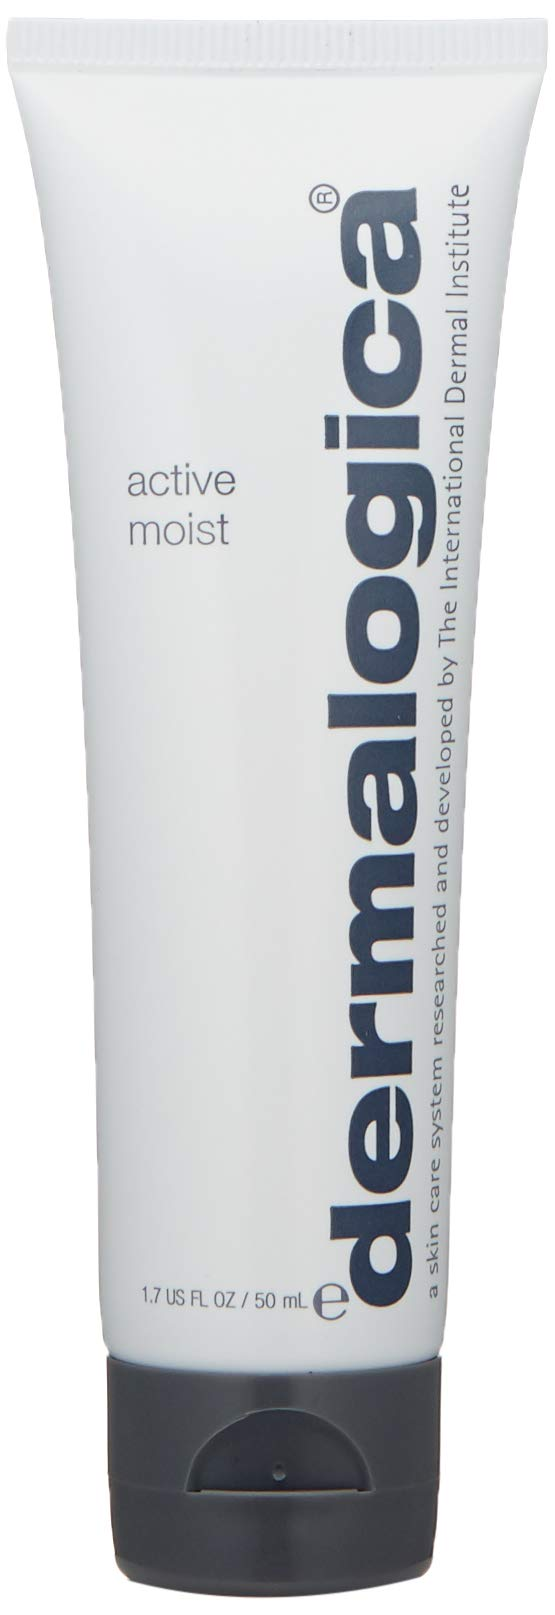 Dermalogica Active Moist, 1.7 Fl Oz